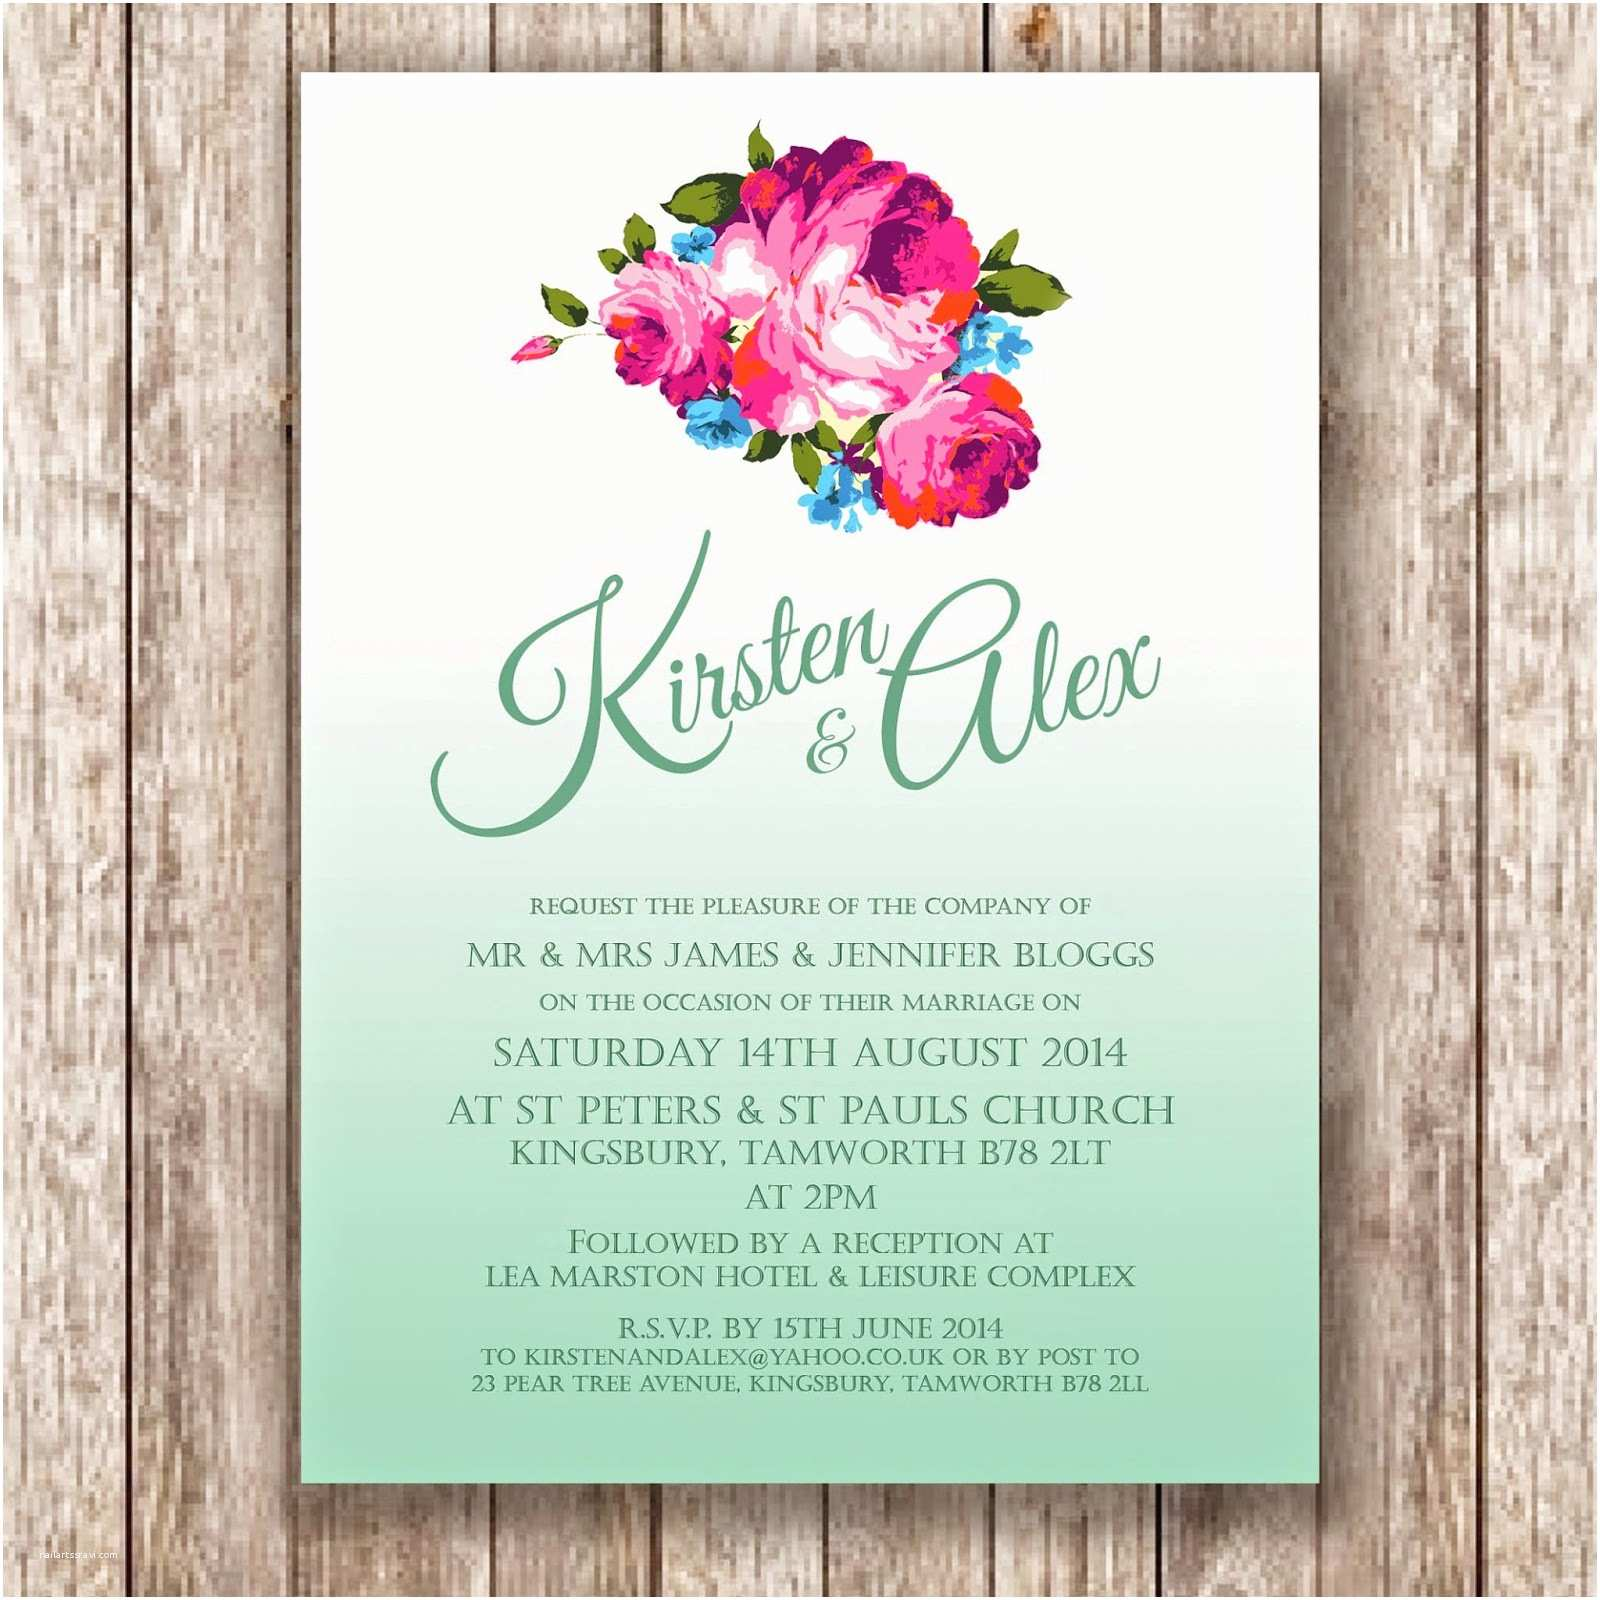 Digital Wedding Invitations Free Create Own Digital Wedding Invitations Ideas